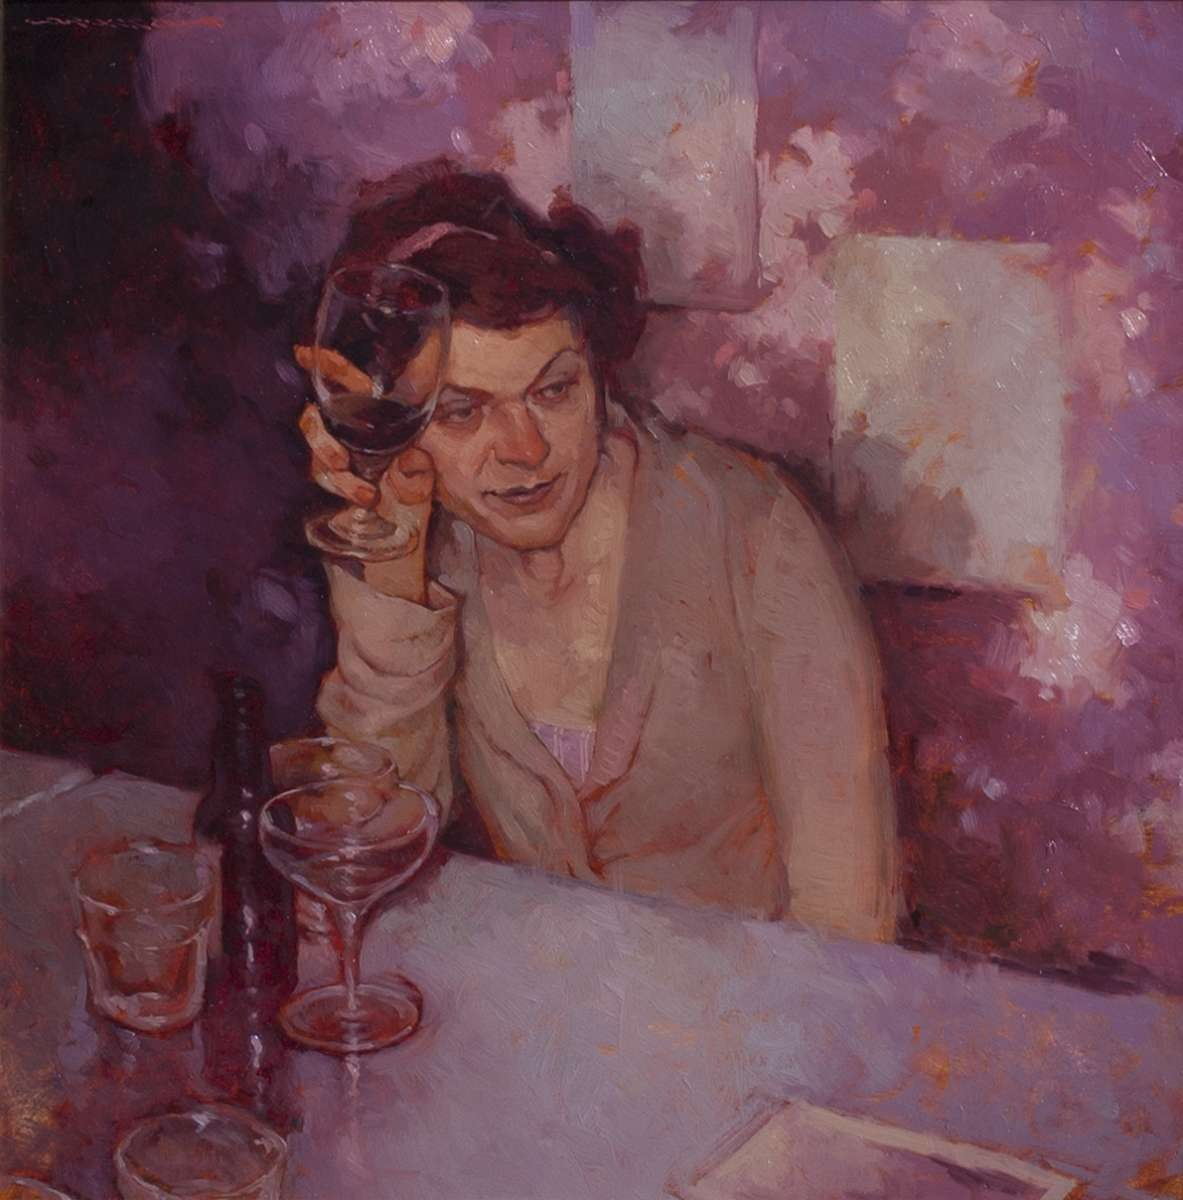 Figure painting by artist Joseph Lorusso